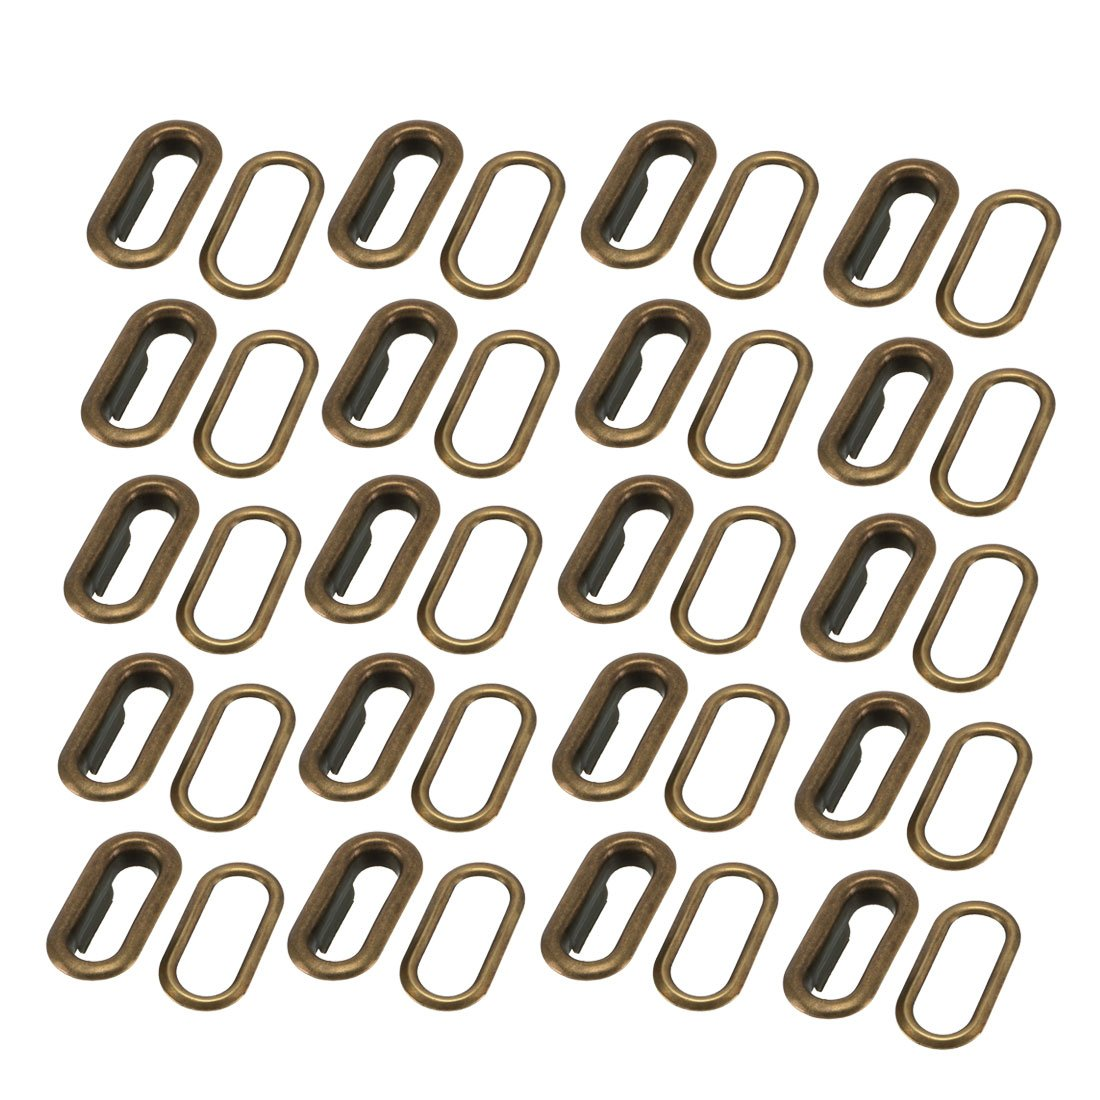 uxcell 20Pcs 18mm Inner Length Oval Shaped Iron Grommet Bronze Tone w Washer a17110300ux0236